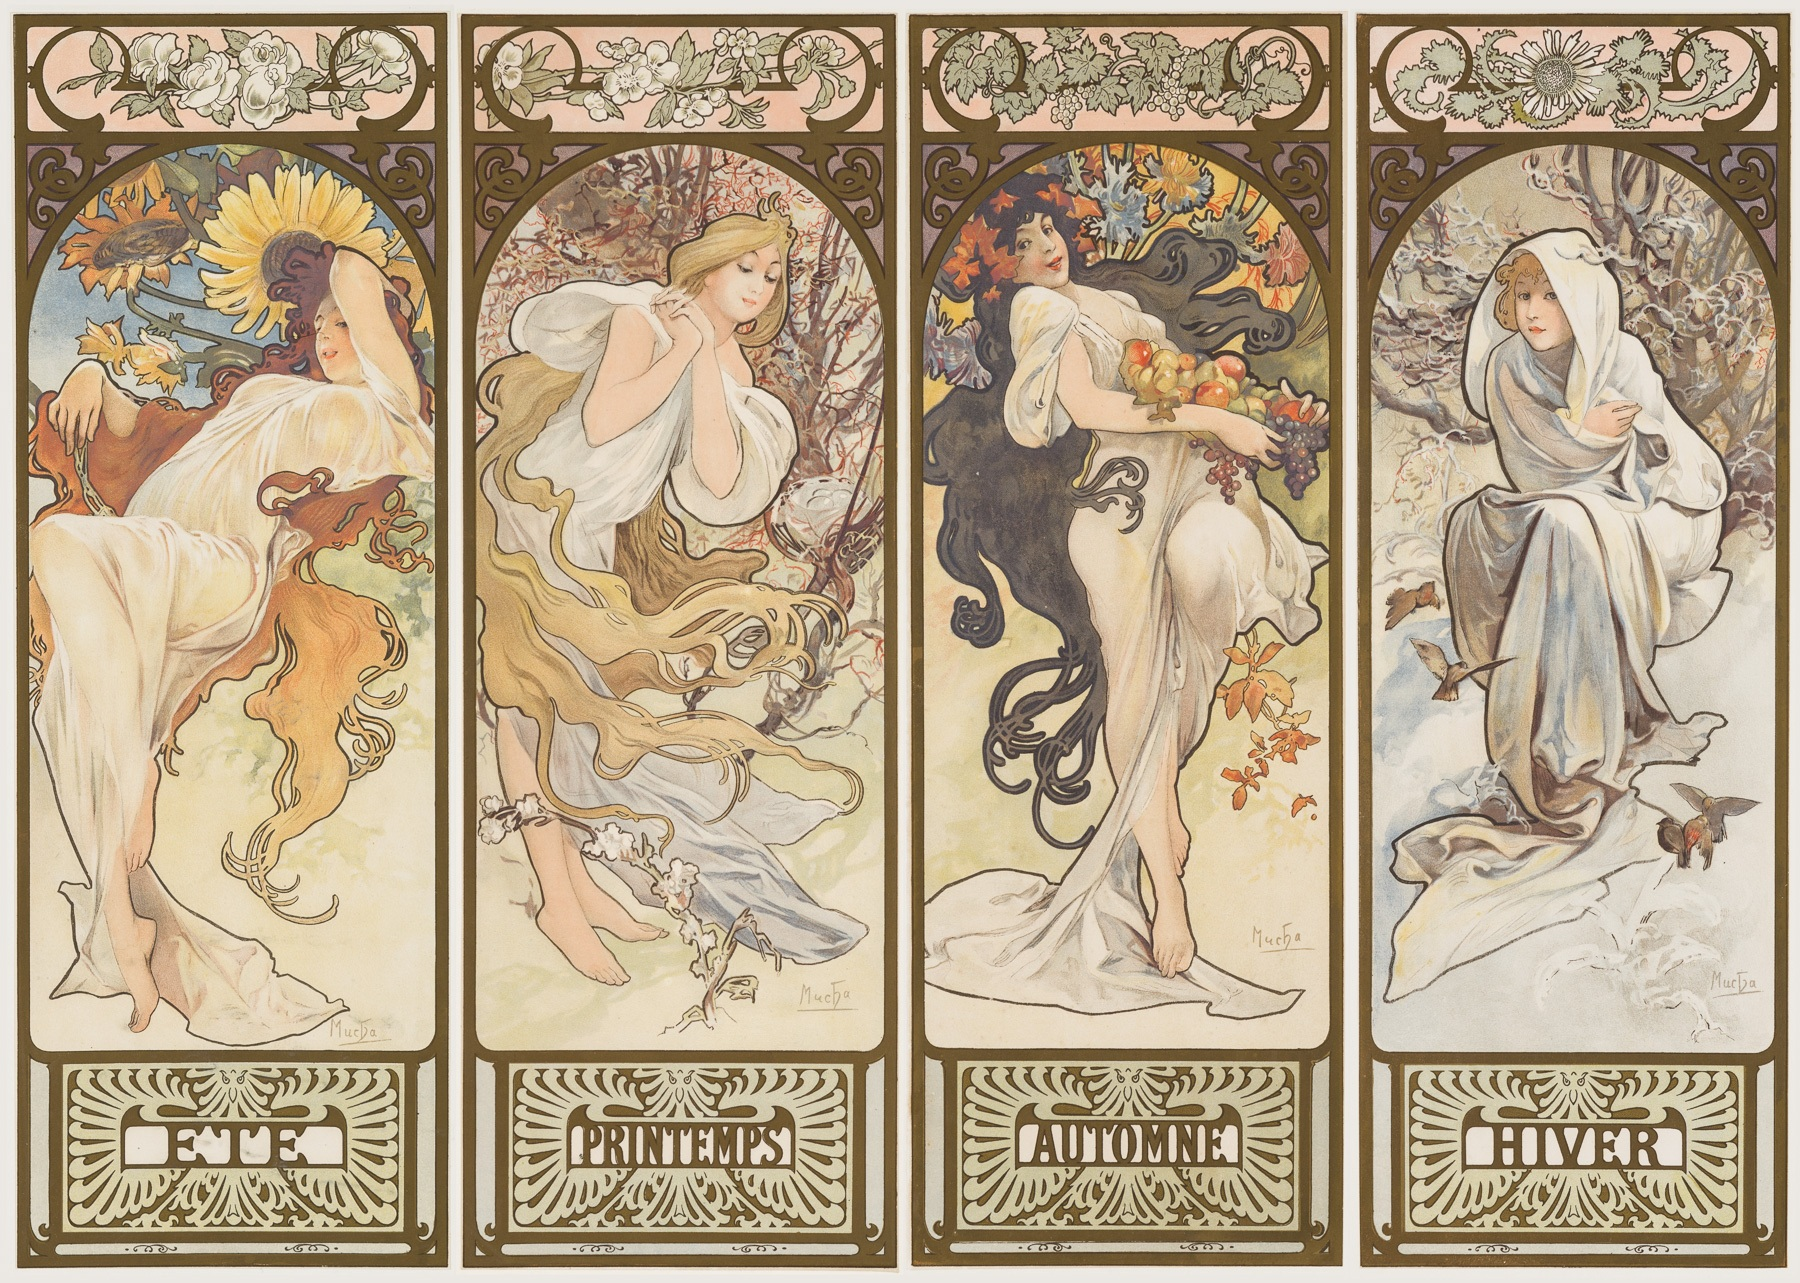 mucha lithograph les saisons christopher clark fine art. Black Bedroom Furniture Sets. Home Design Ideas